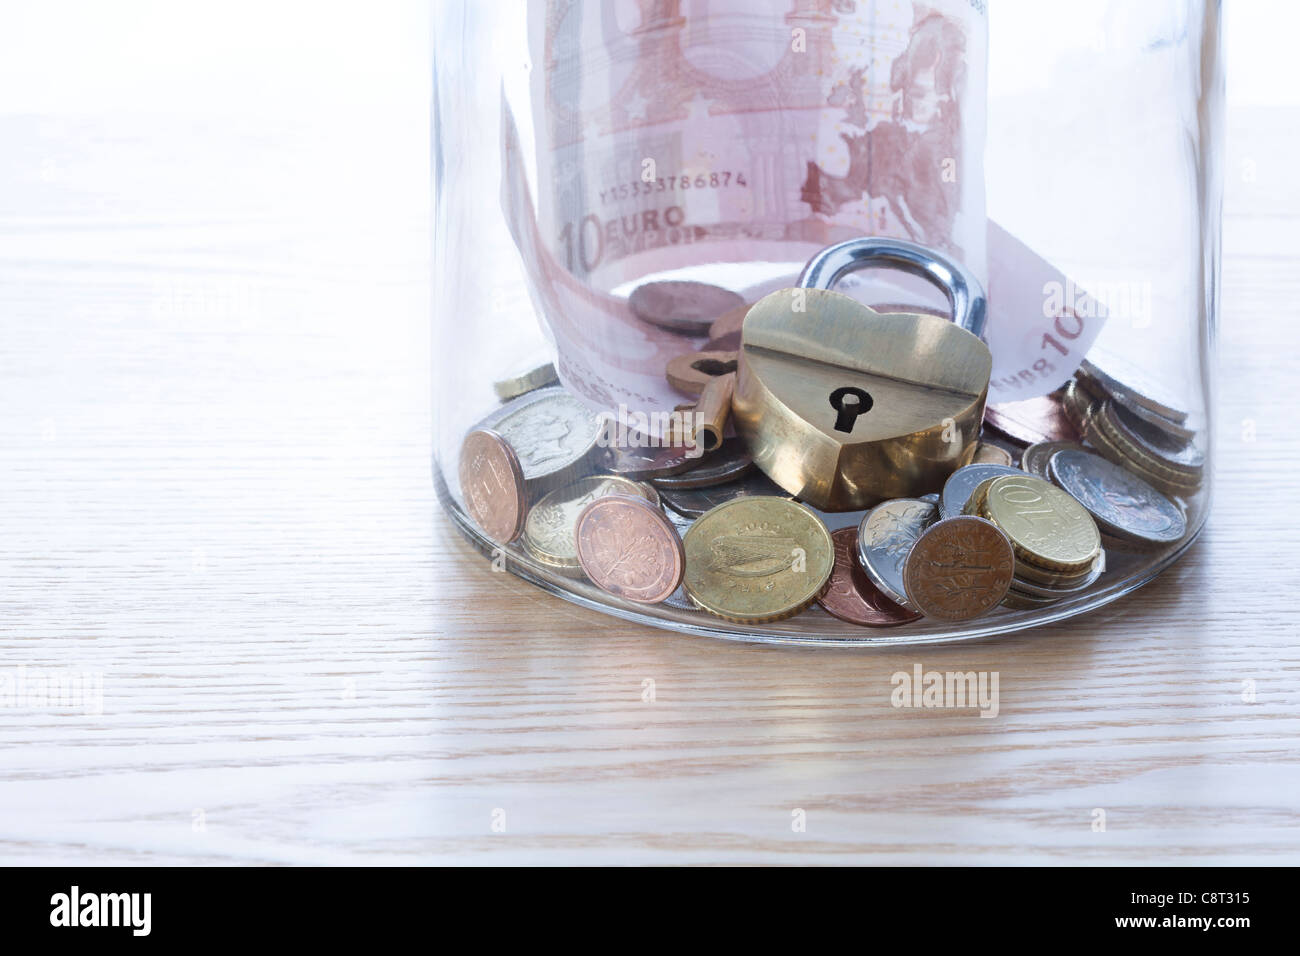 Close-up of European union currency with lock and key in glass jar - Stock Image